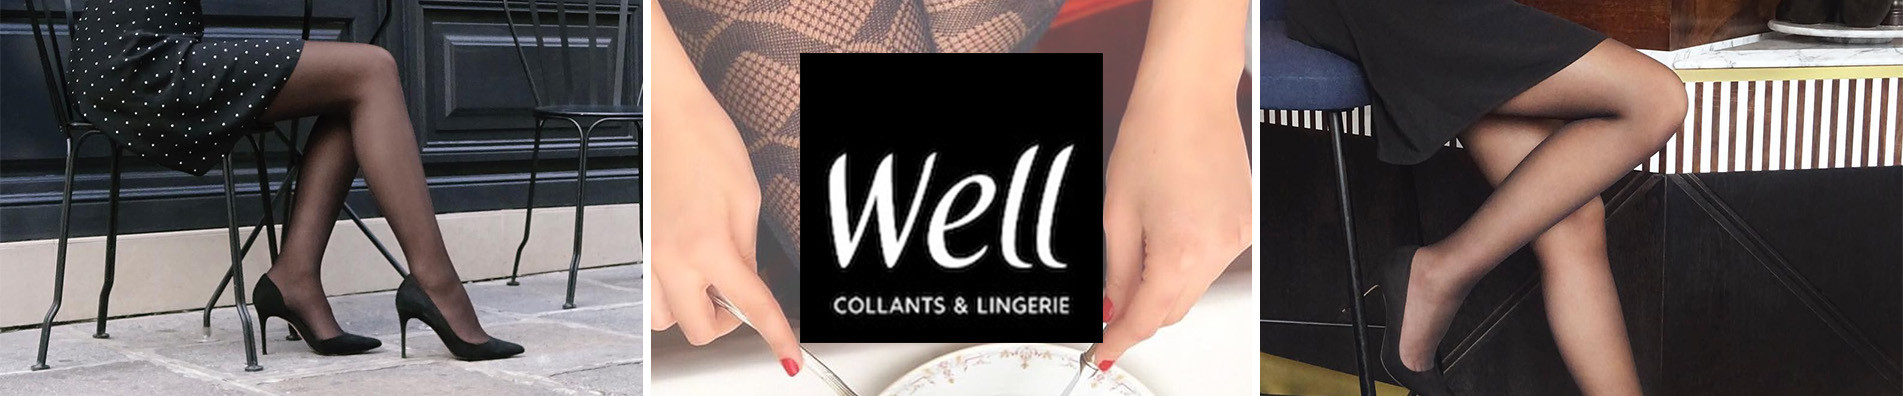 Collants Well, Collants Femme transparent, opaque, classique - M.D.C.